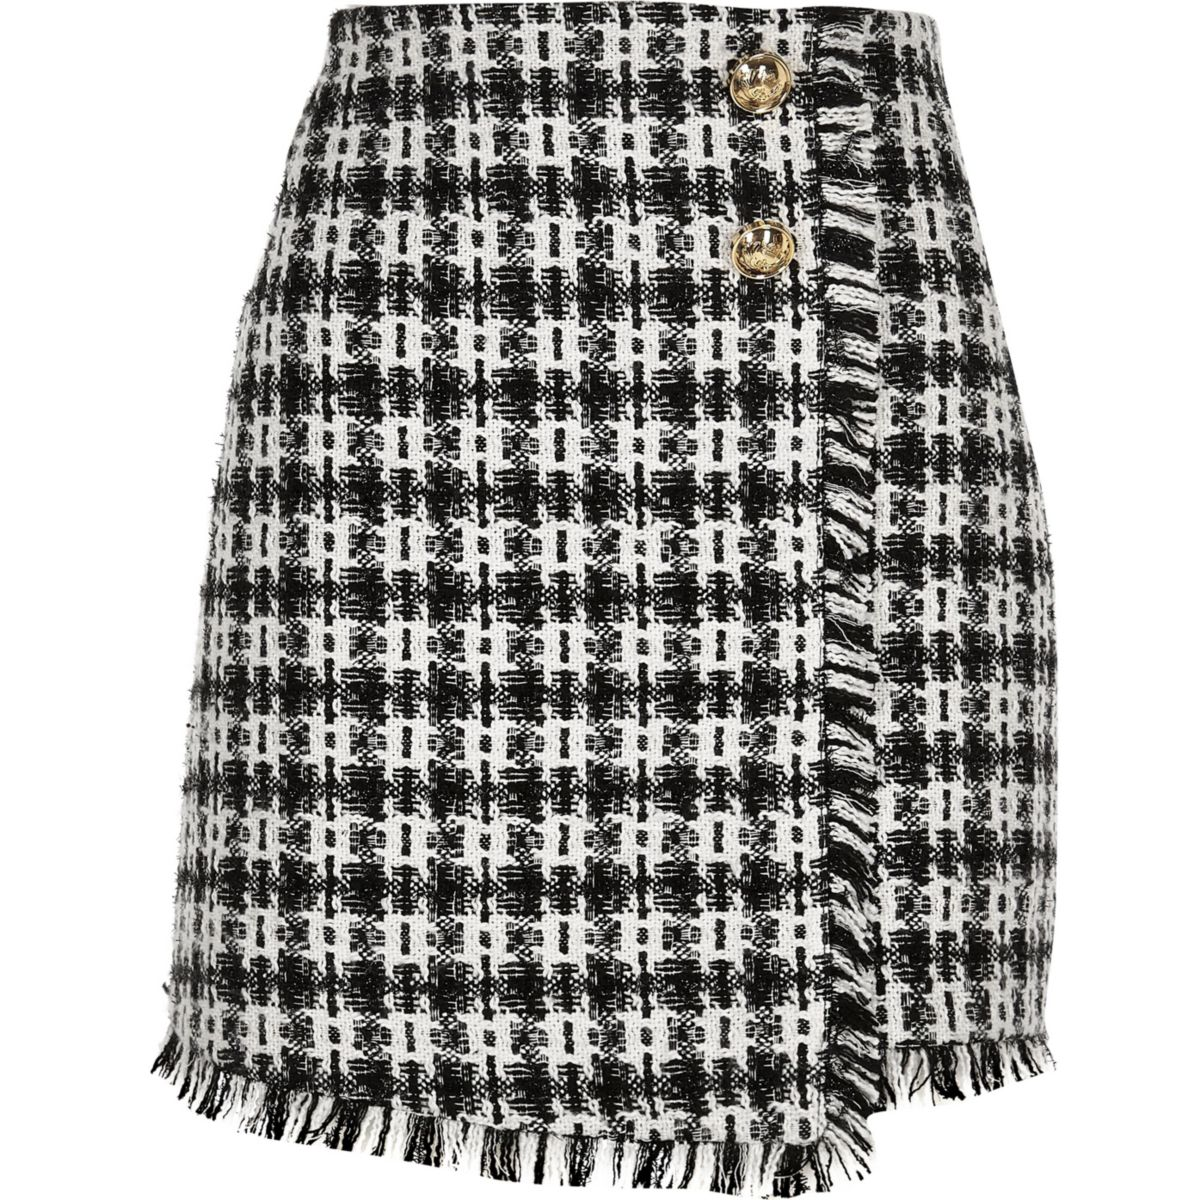 boucle skirt button mini check Black 5wpqAA